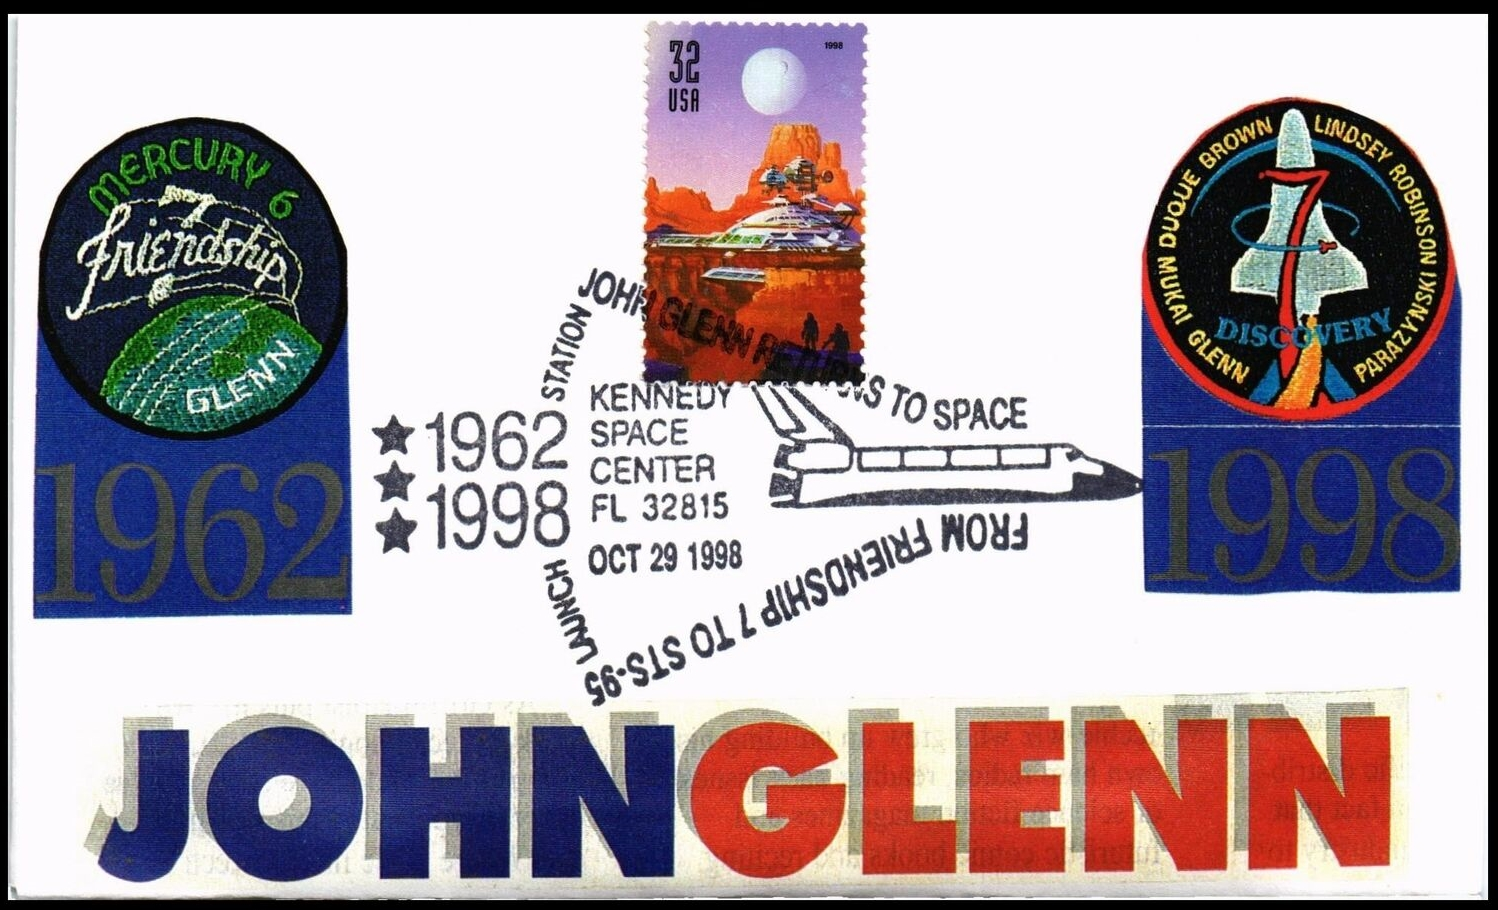 Launch day cover marking John Glenn's return to space on October 29, 1998.